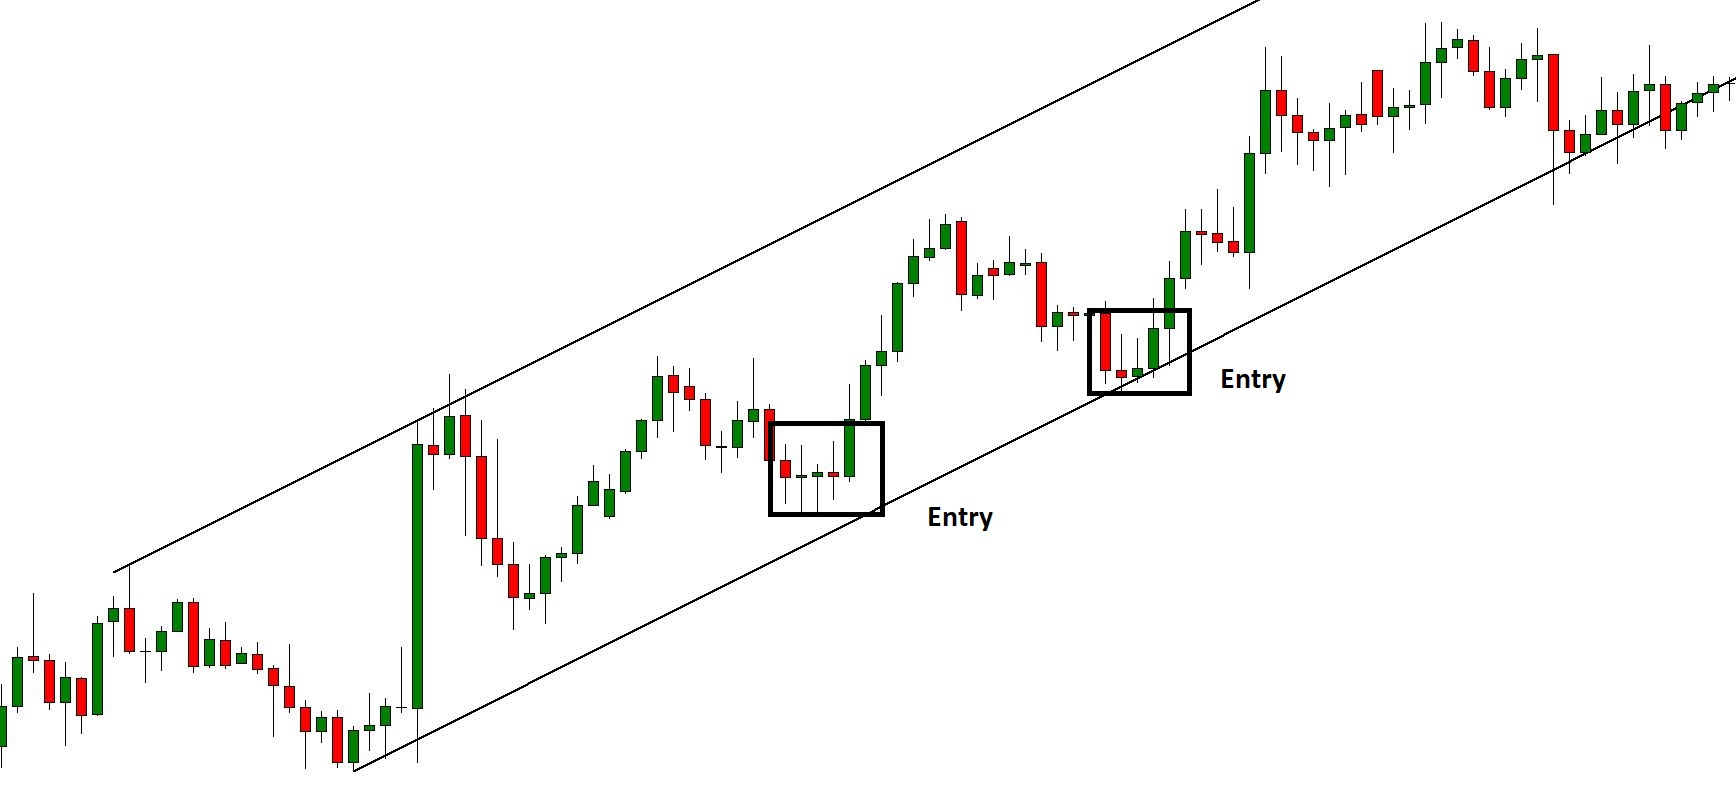 Bullish Channel Entry